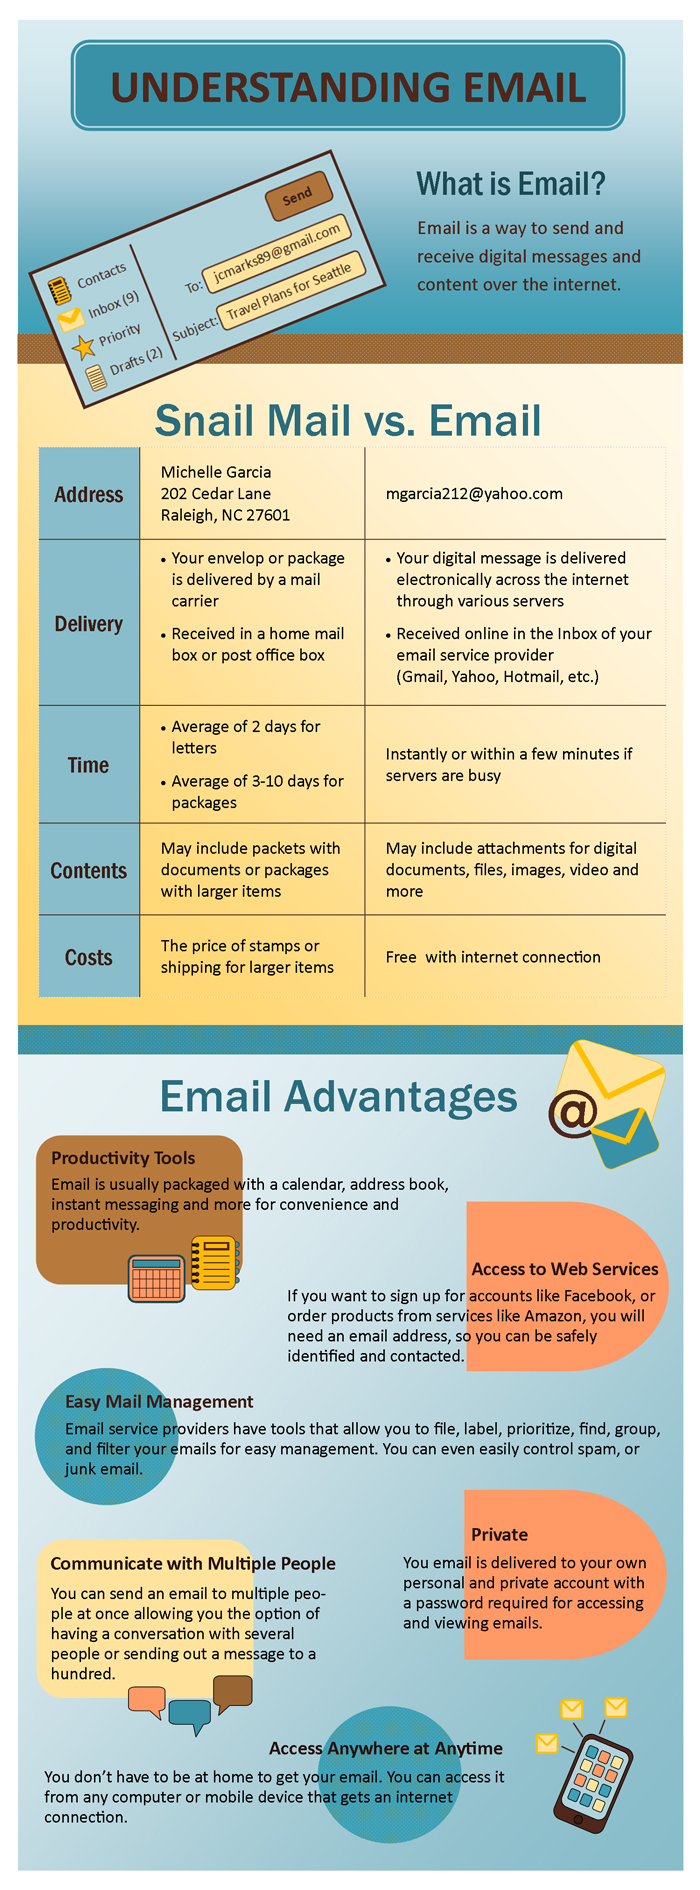 Email 101: Introduction to Email